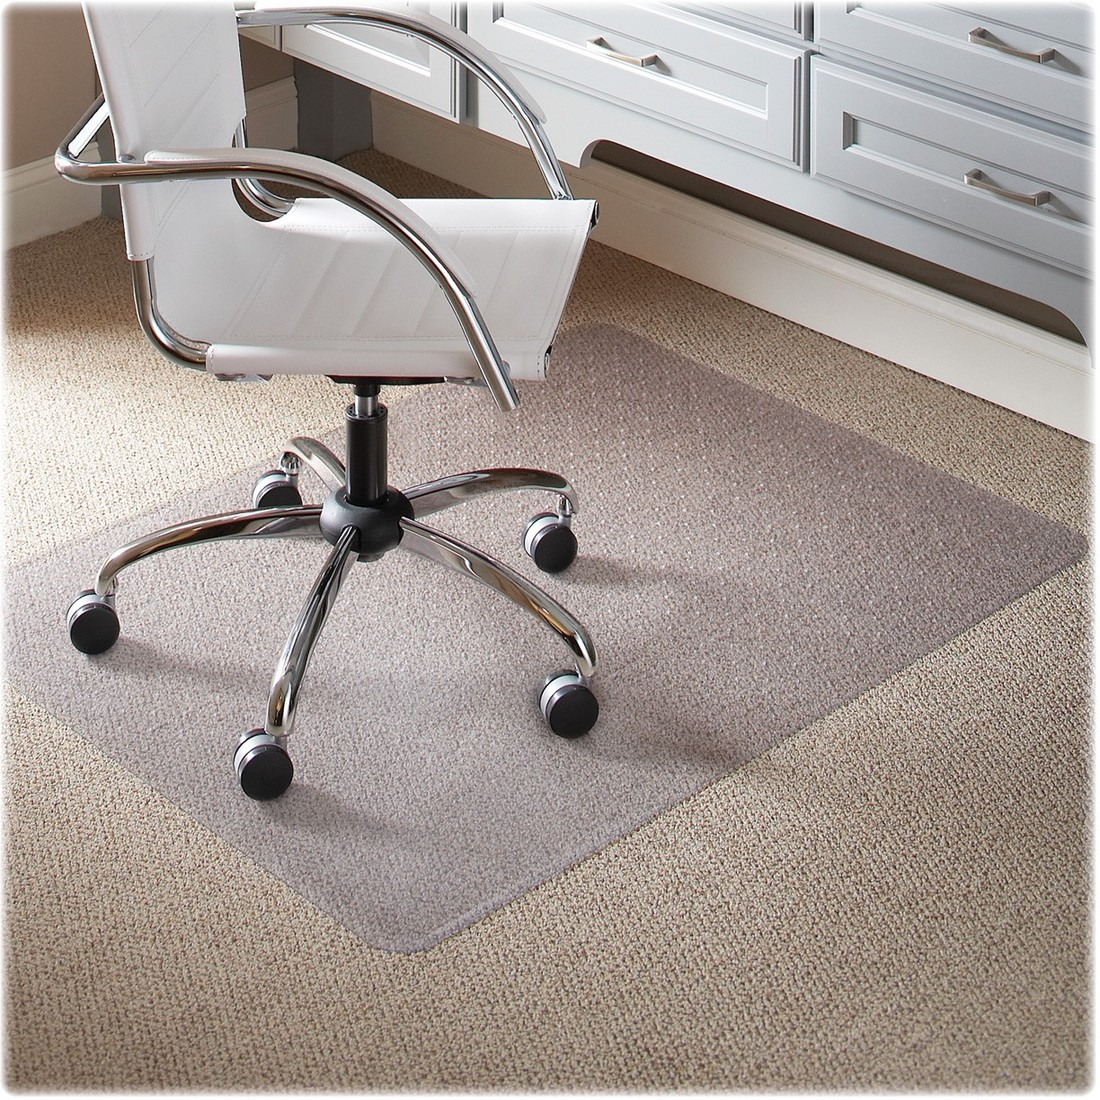 ES Robbins Task Series 46 x 60 Chair Mat for Low Pile Carpet, Rectangular